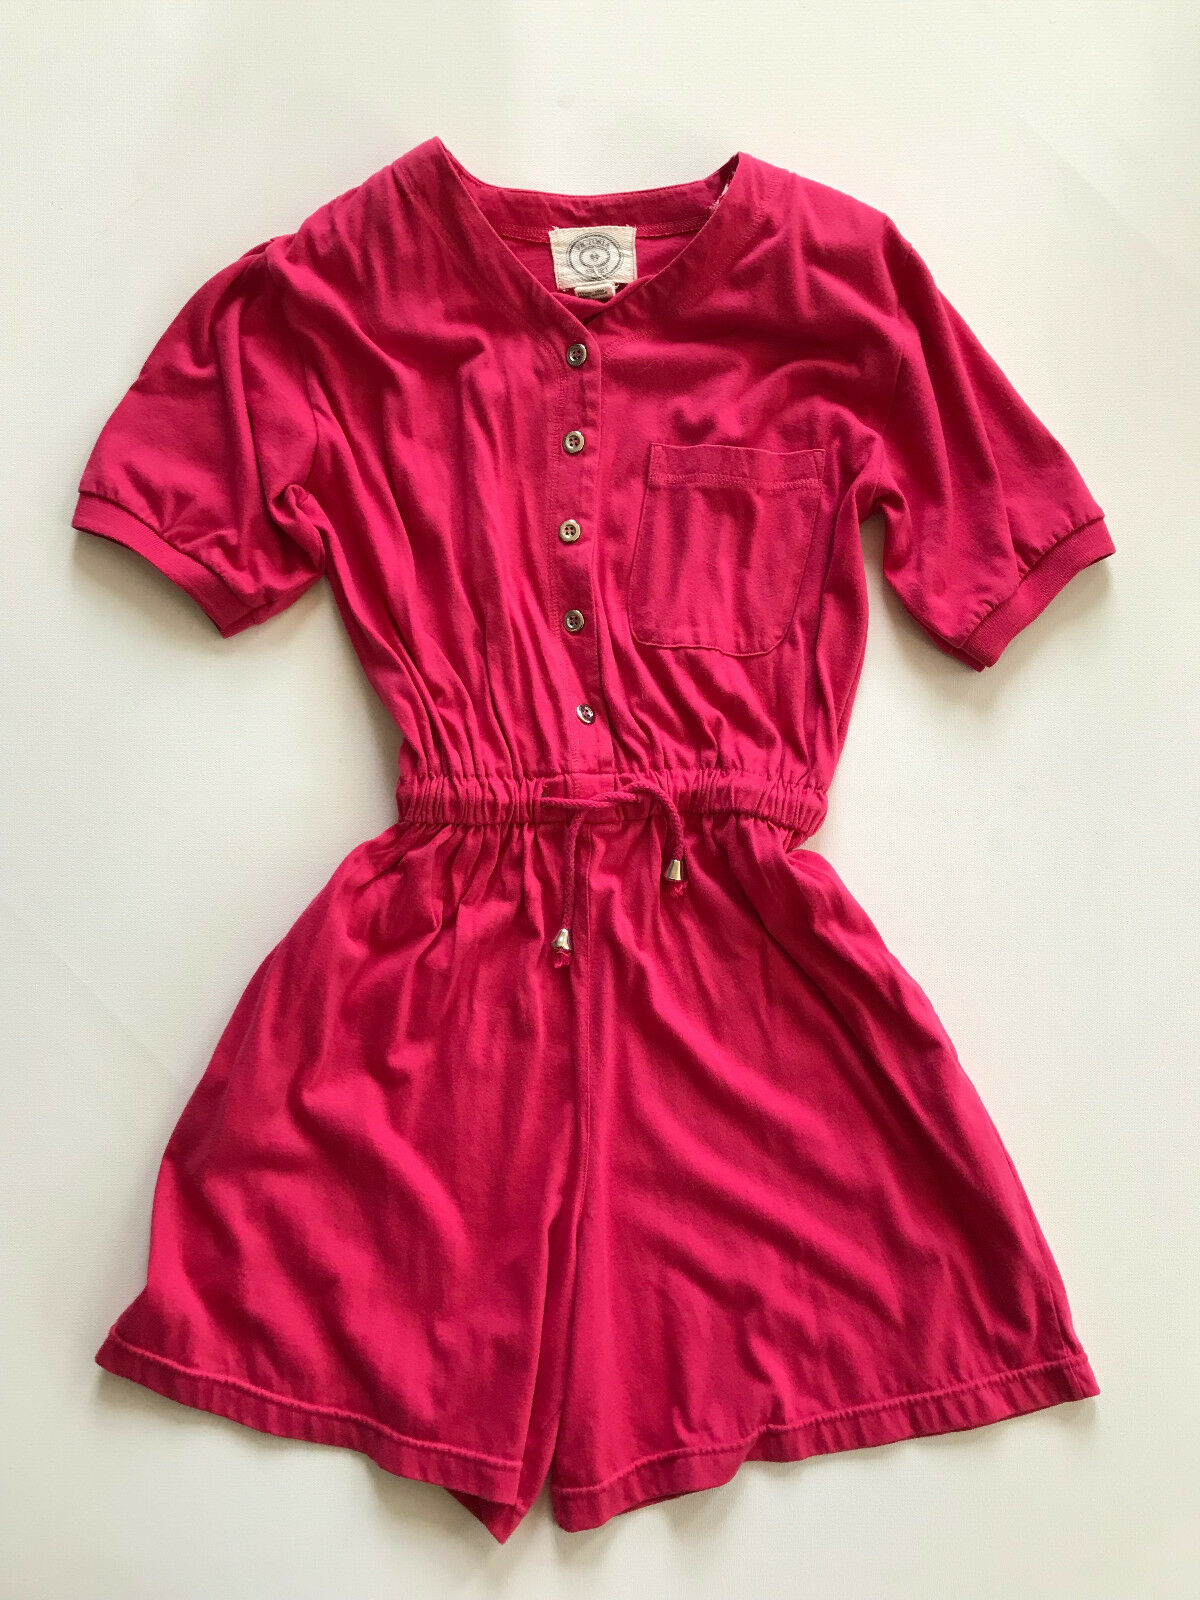 VNTG 90's Cotton Baseball Jersey Shorts Romper SMALL Hot Pink Victoria's Secret